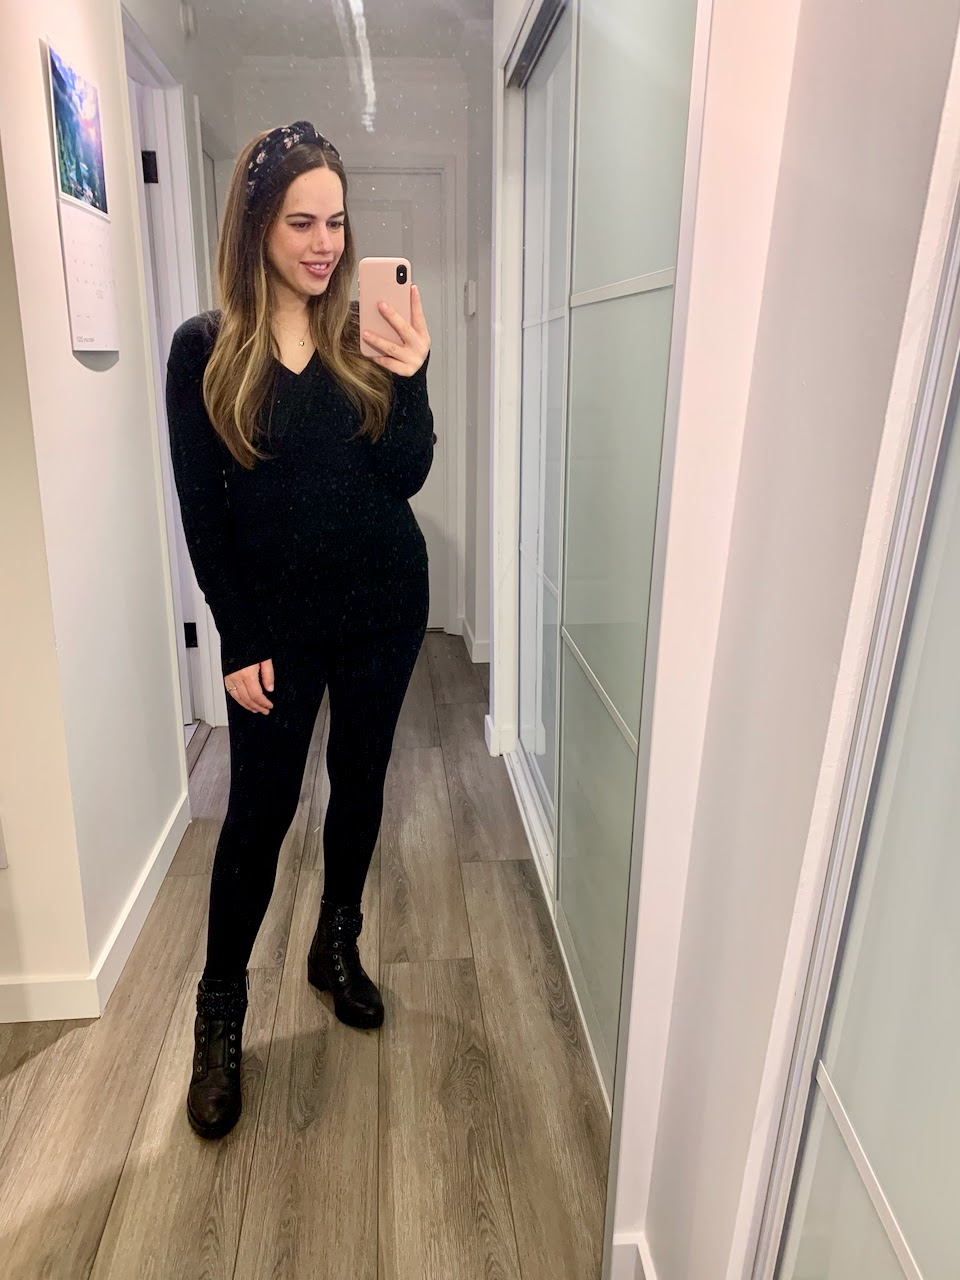 Jules in Flats - All Black Outfit (Business Casual Workwear on a Budget)